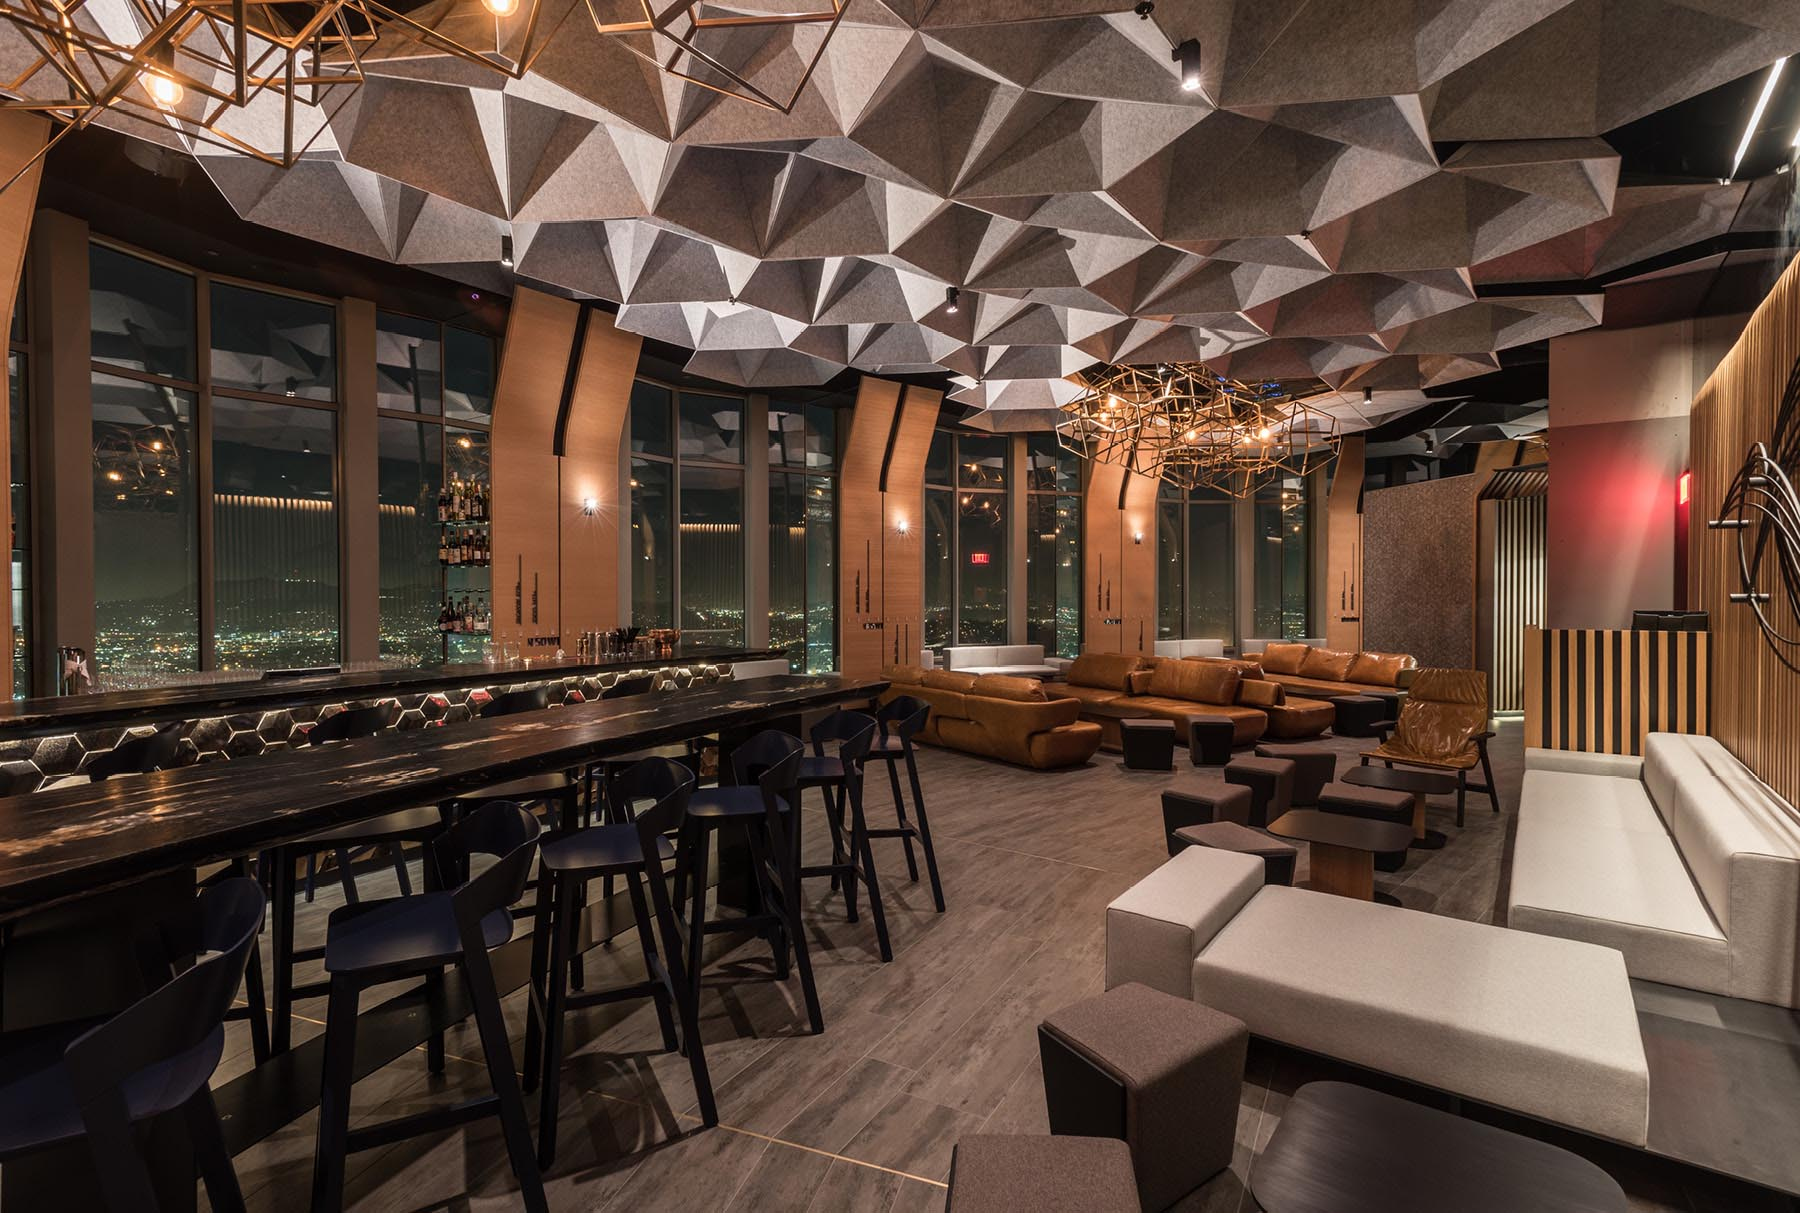 SoundStar® faceted, acoustical system installed in 71 Above restaurant.